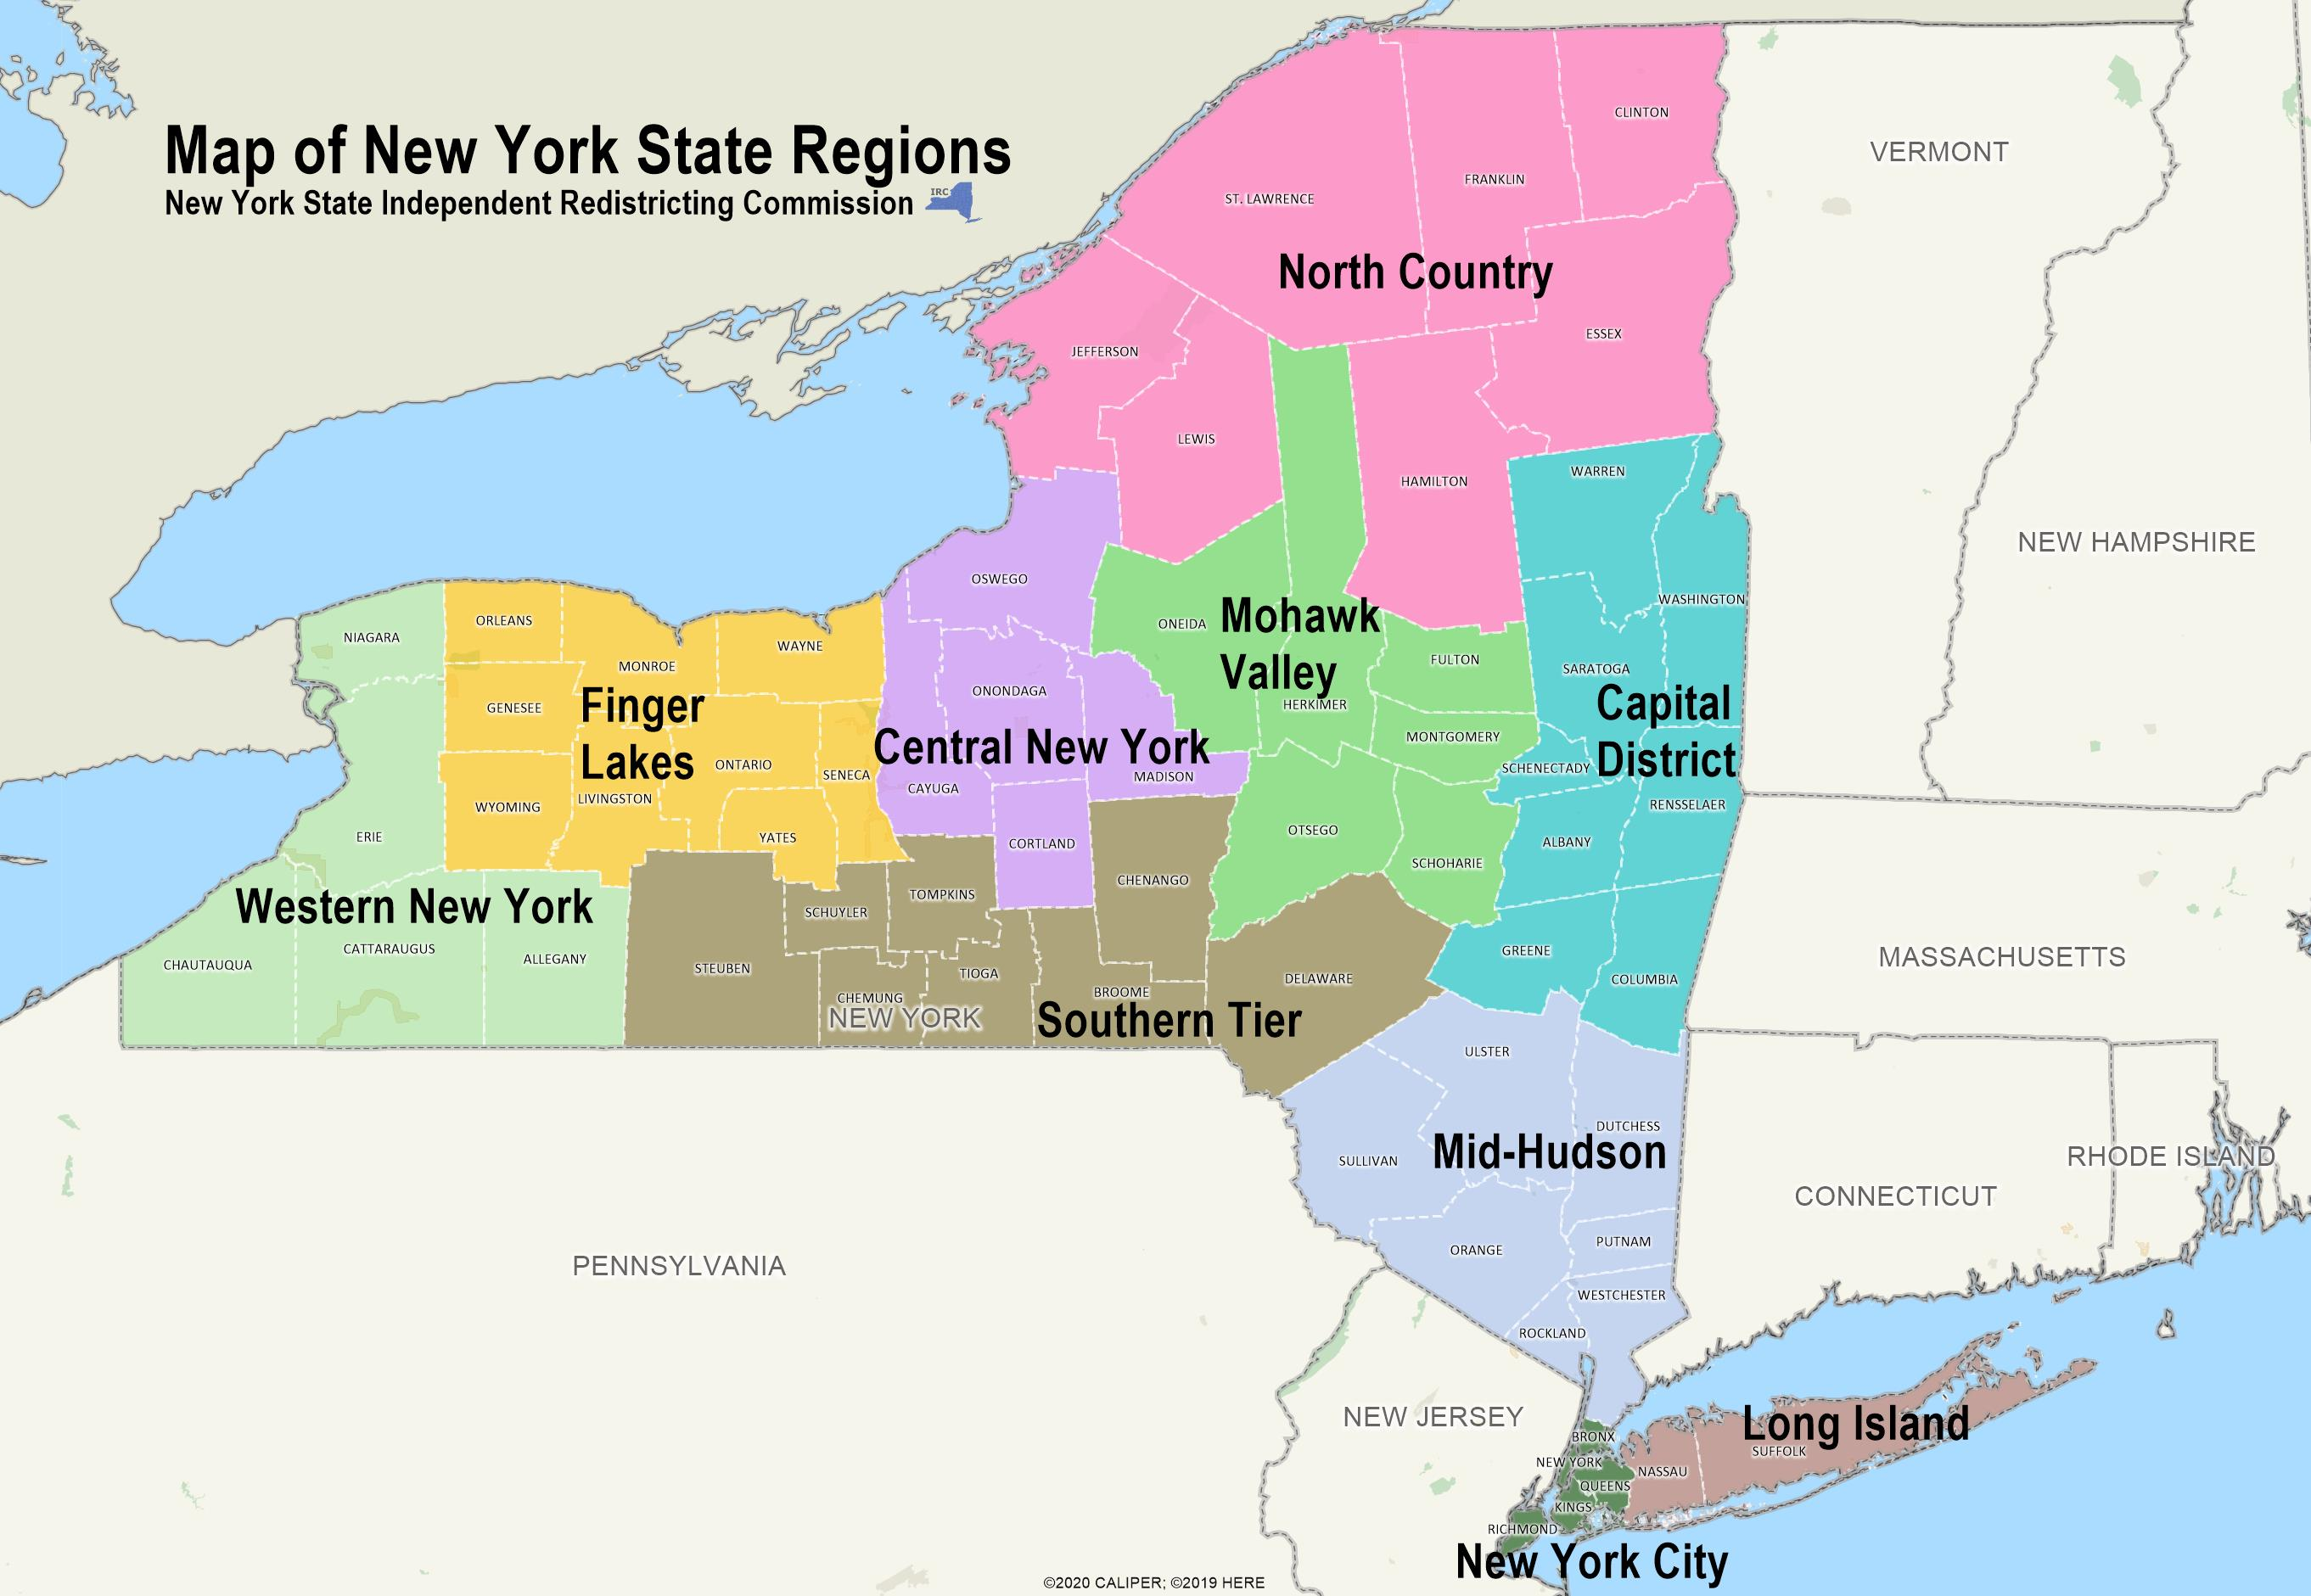 Regional Map of New York State